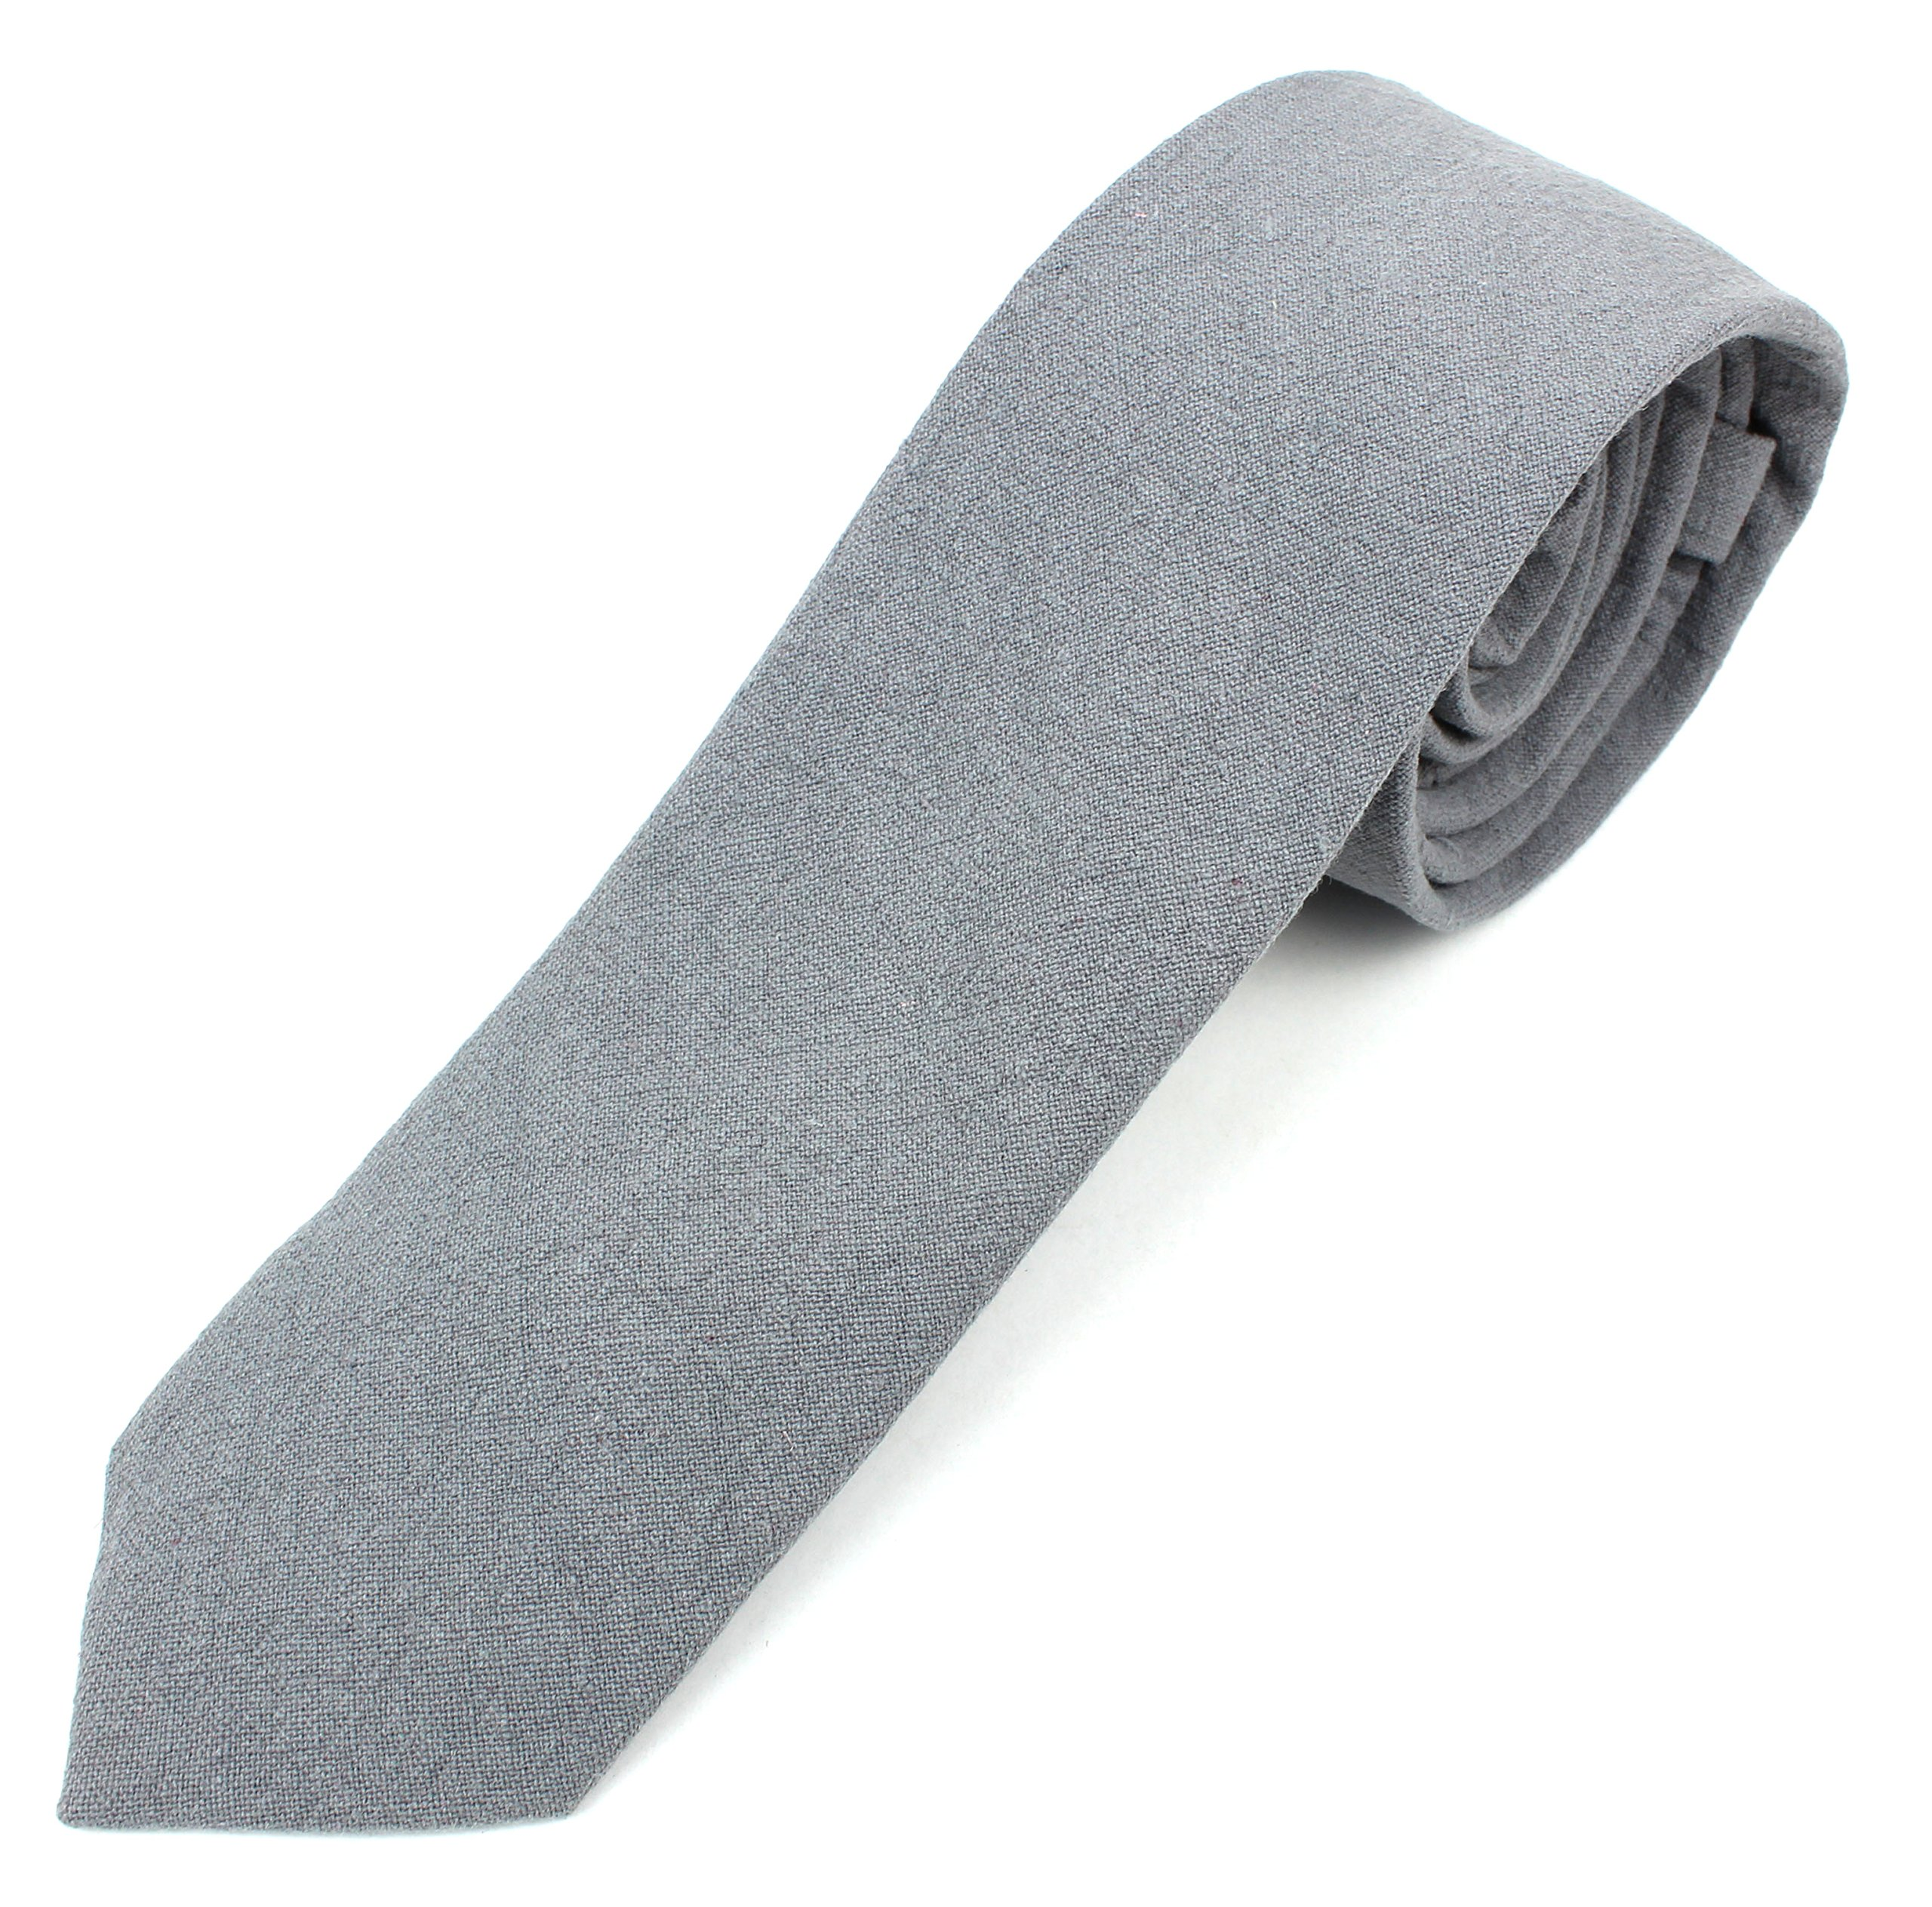 Men's Skinny Necktie Tie Textured and Distressed Finish - Gray